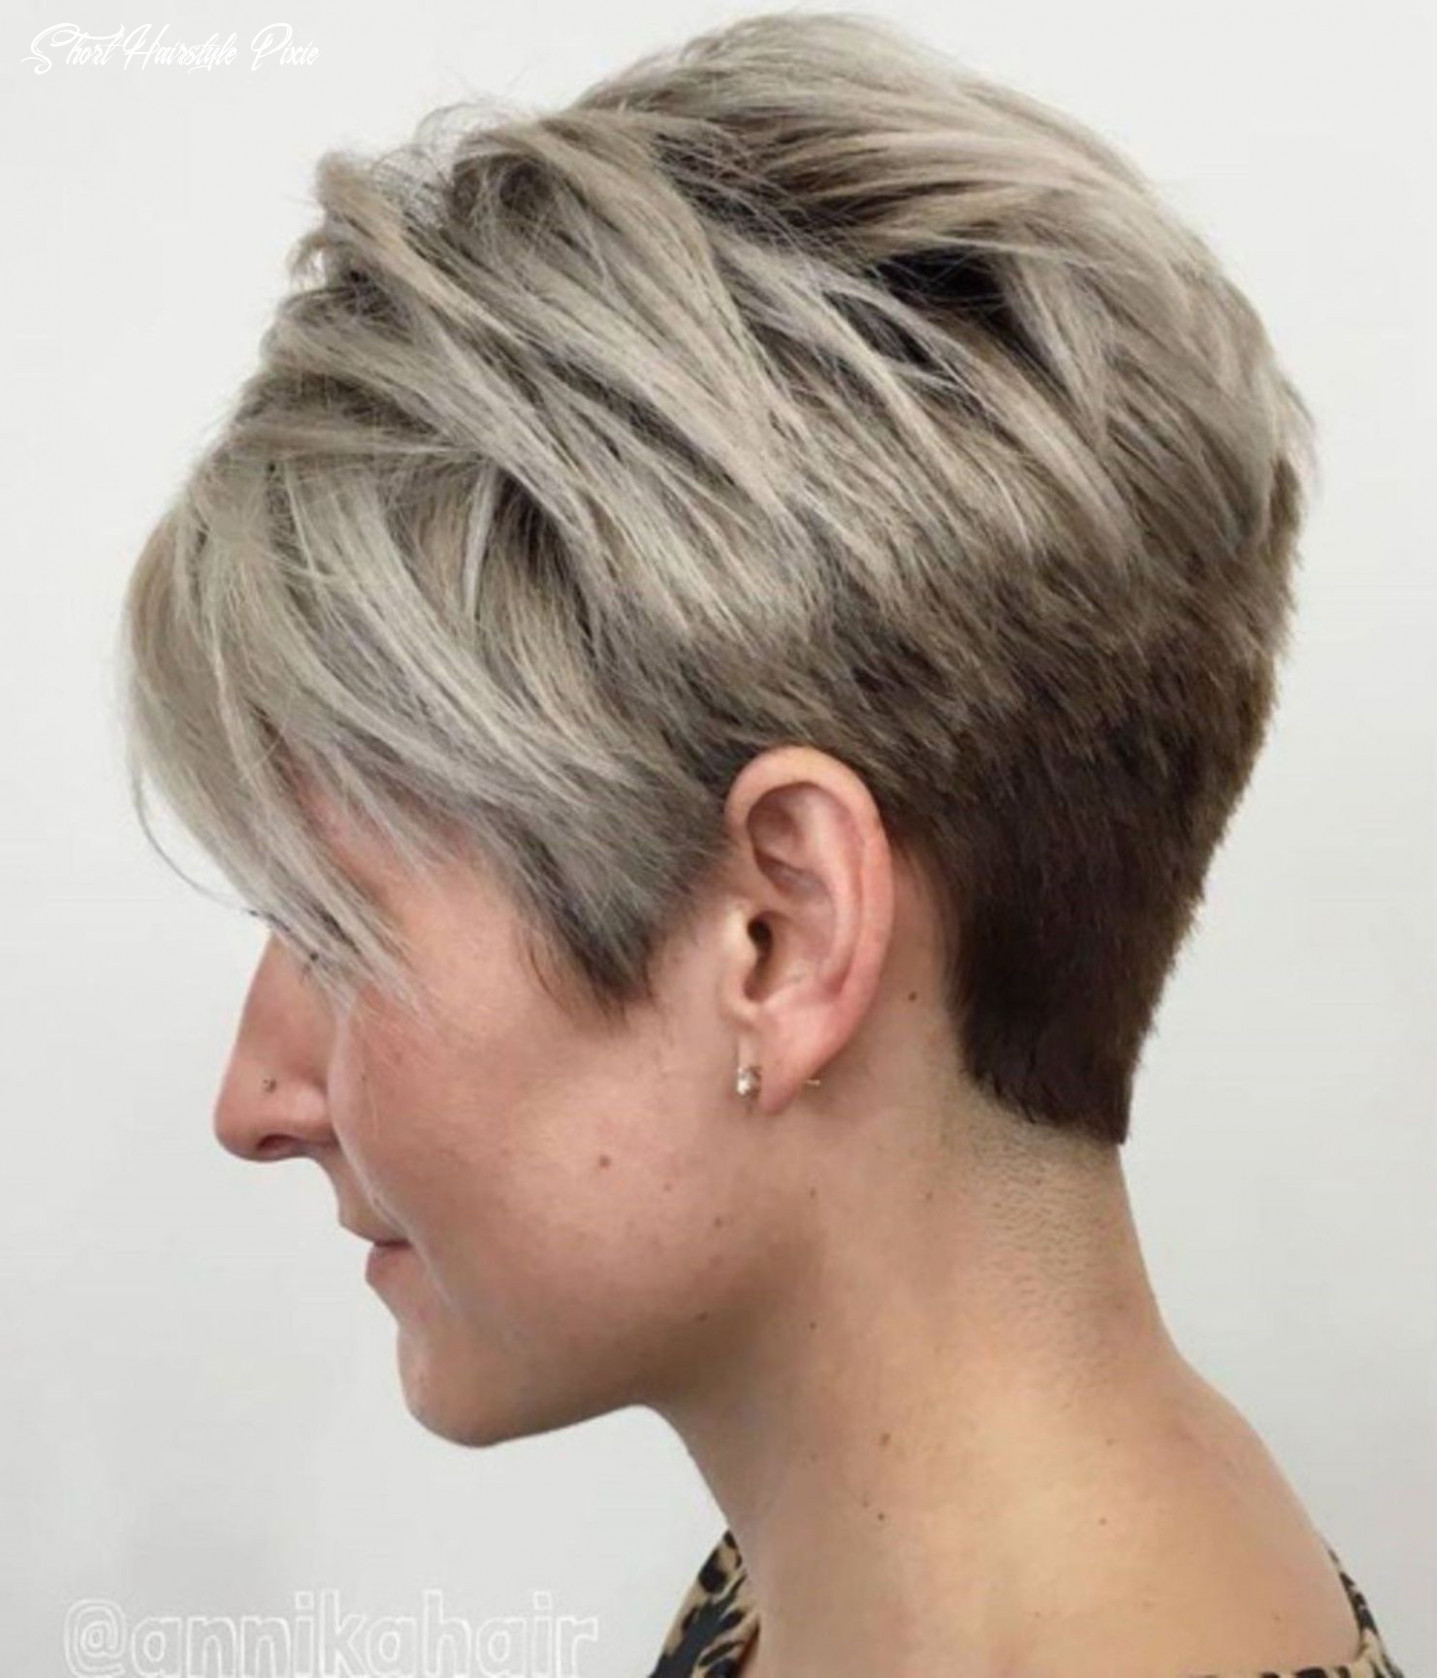 Pixie cut short hairstyles fresh hairstyles pixie cuts the newest